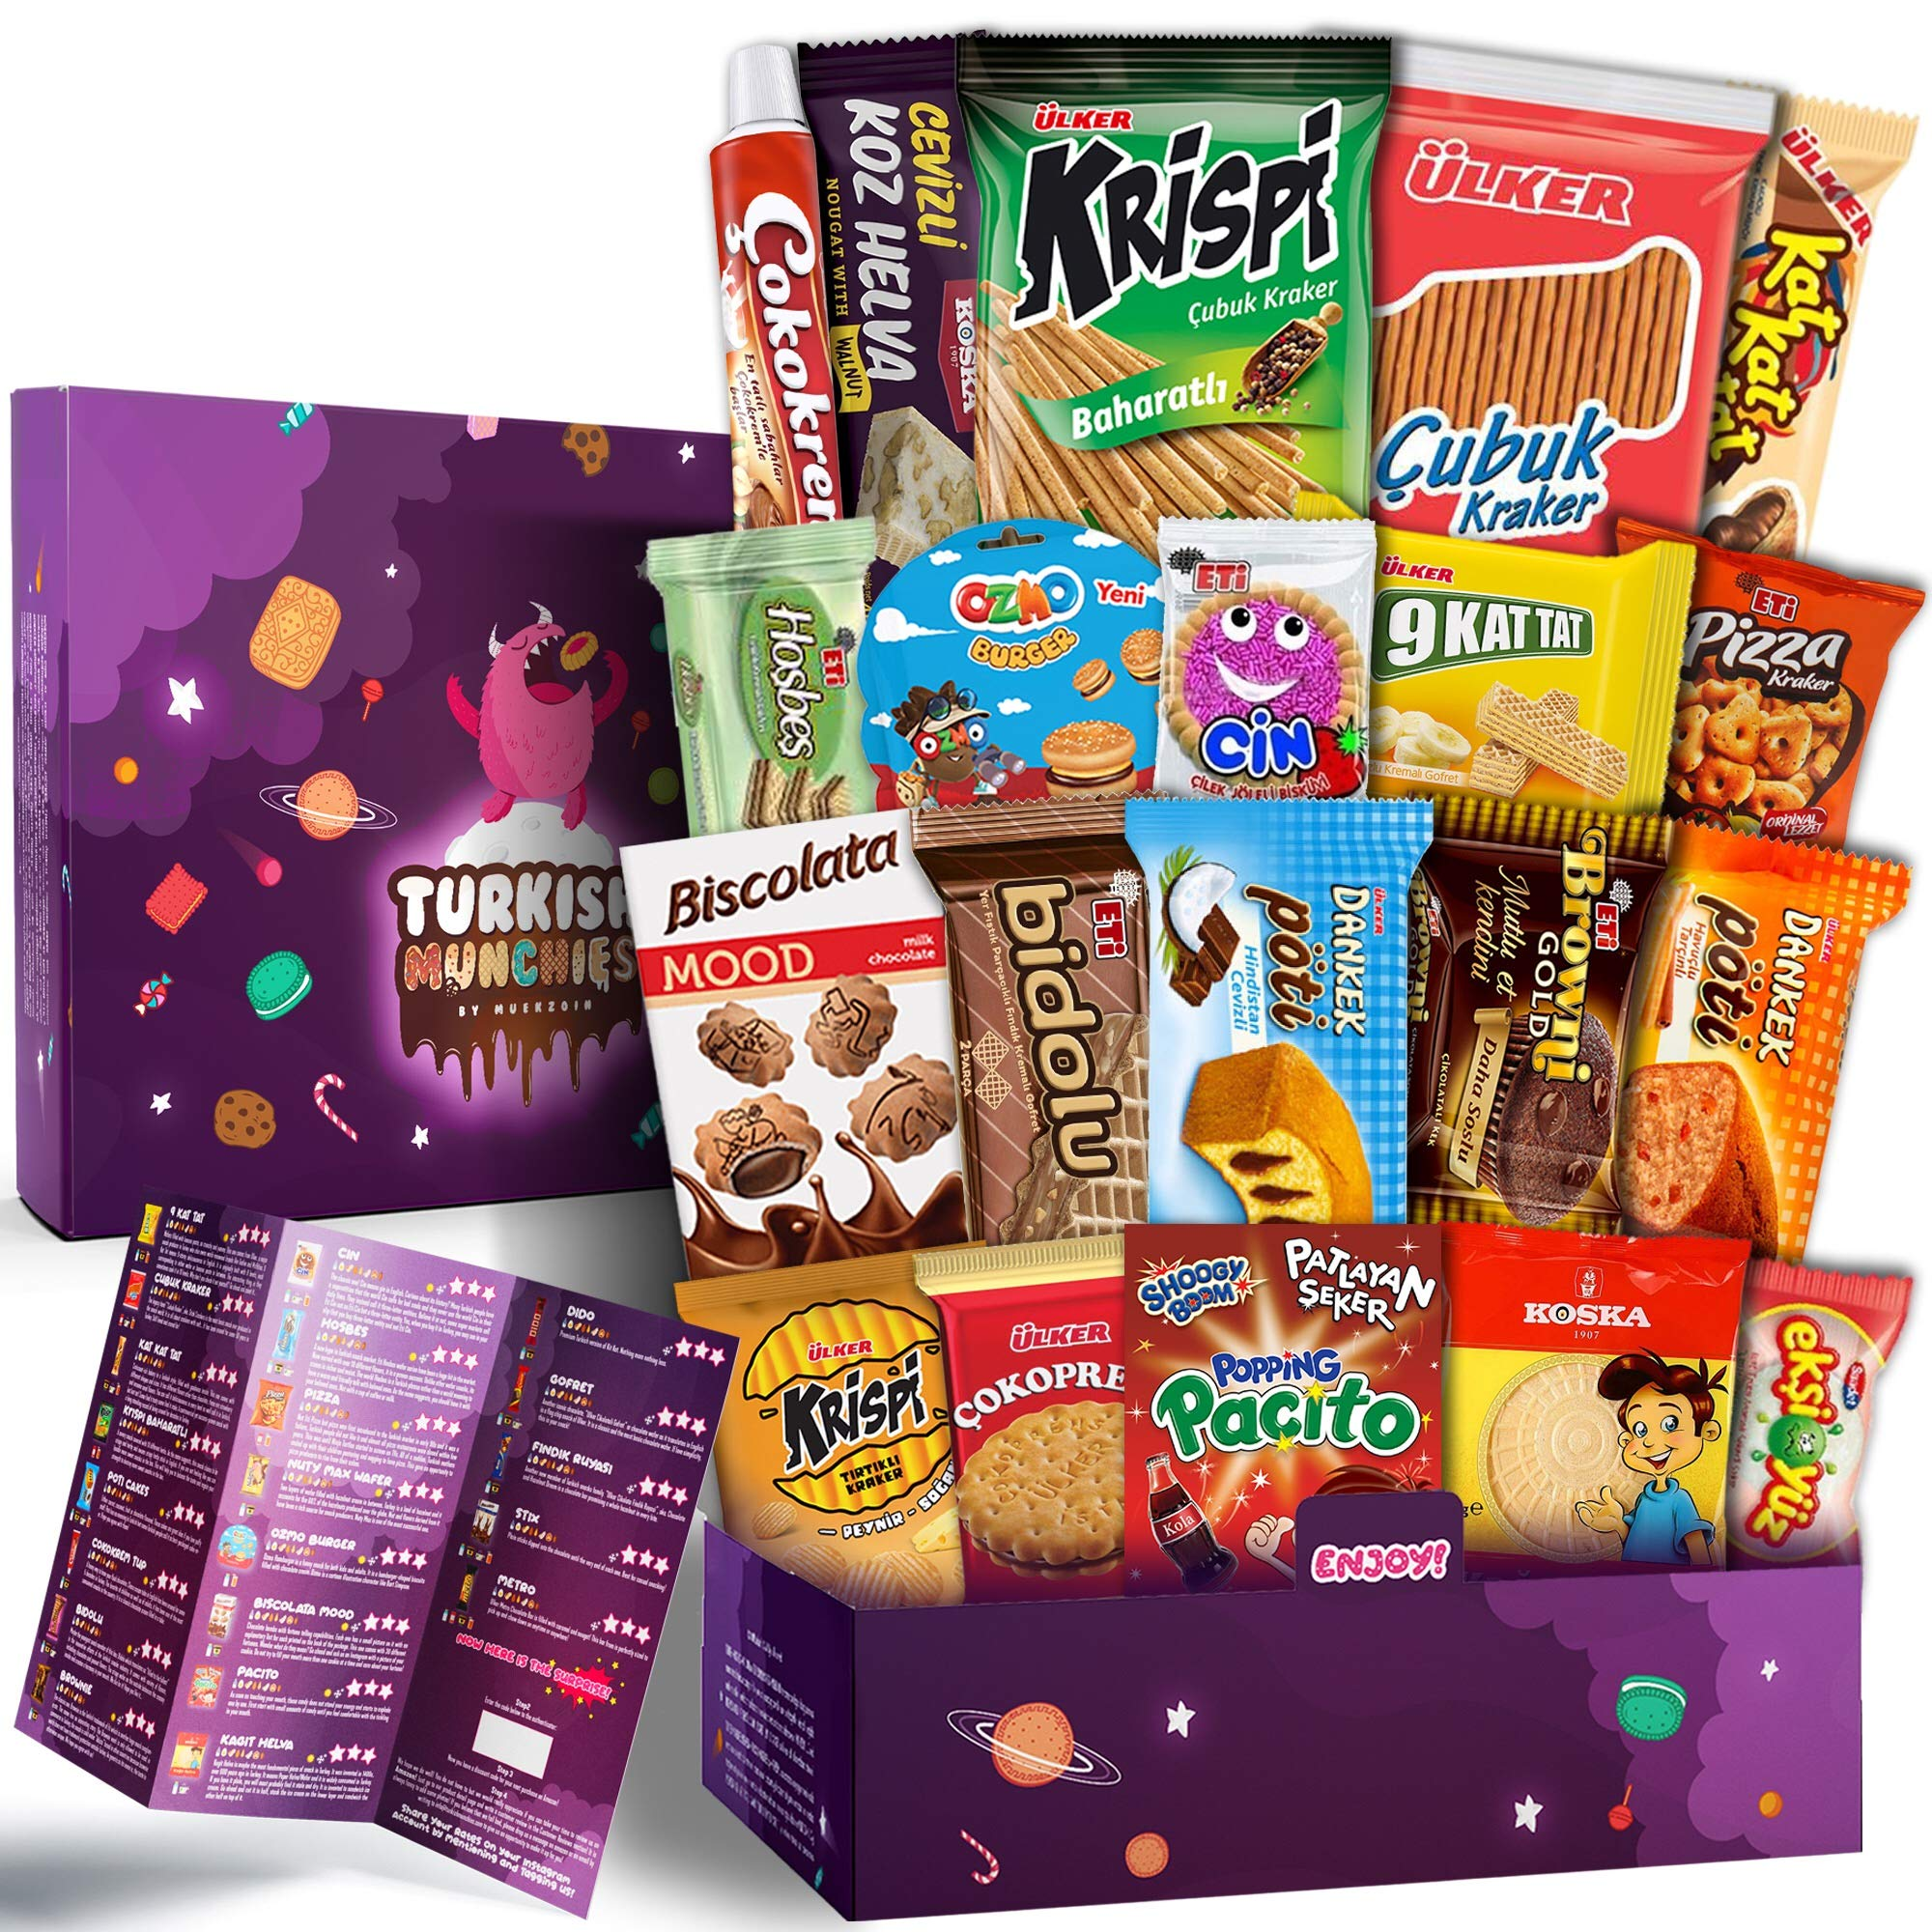 Maxi Premium International Snacks Variety Pack Care Package for Adults and Kids, Ultimate Assortment of Turkish Treats, Mix variety pack of snacks, Best Foreign Candy or Foreign Snacks Box